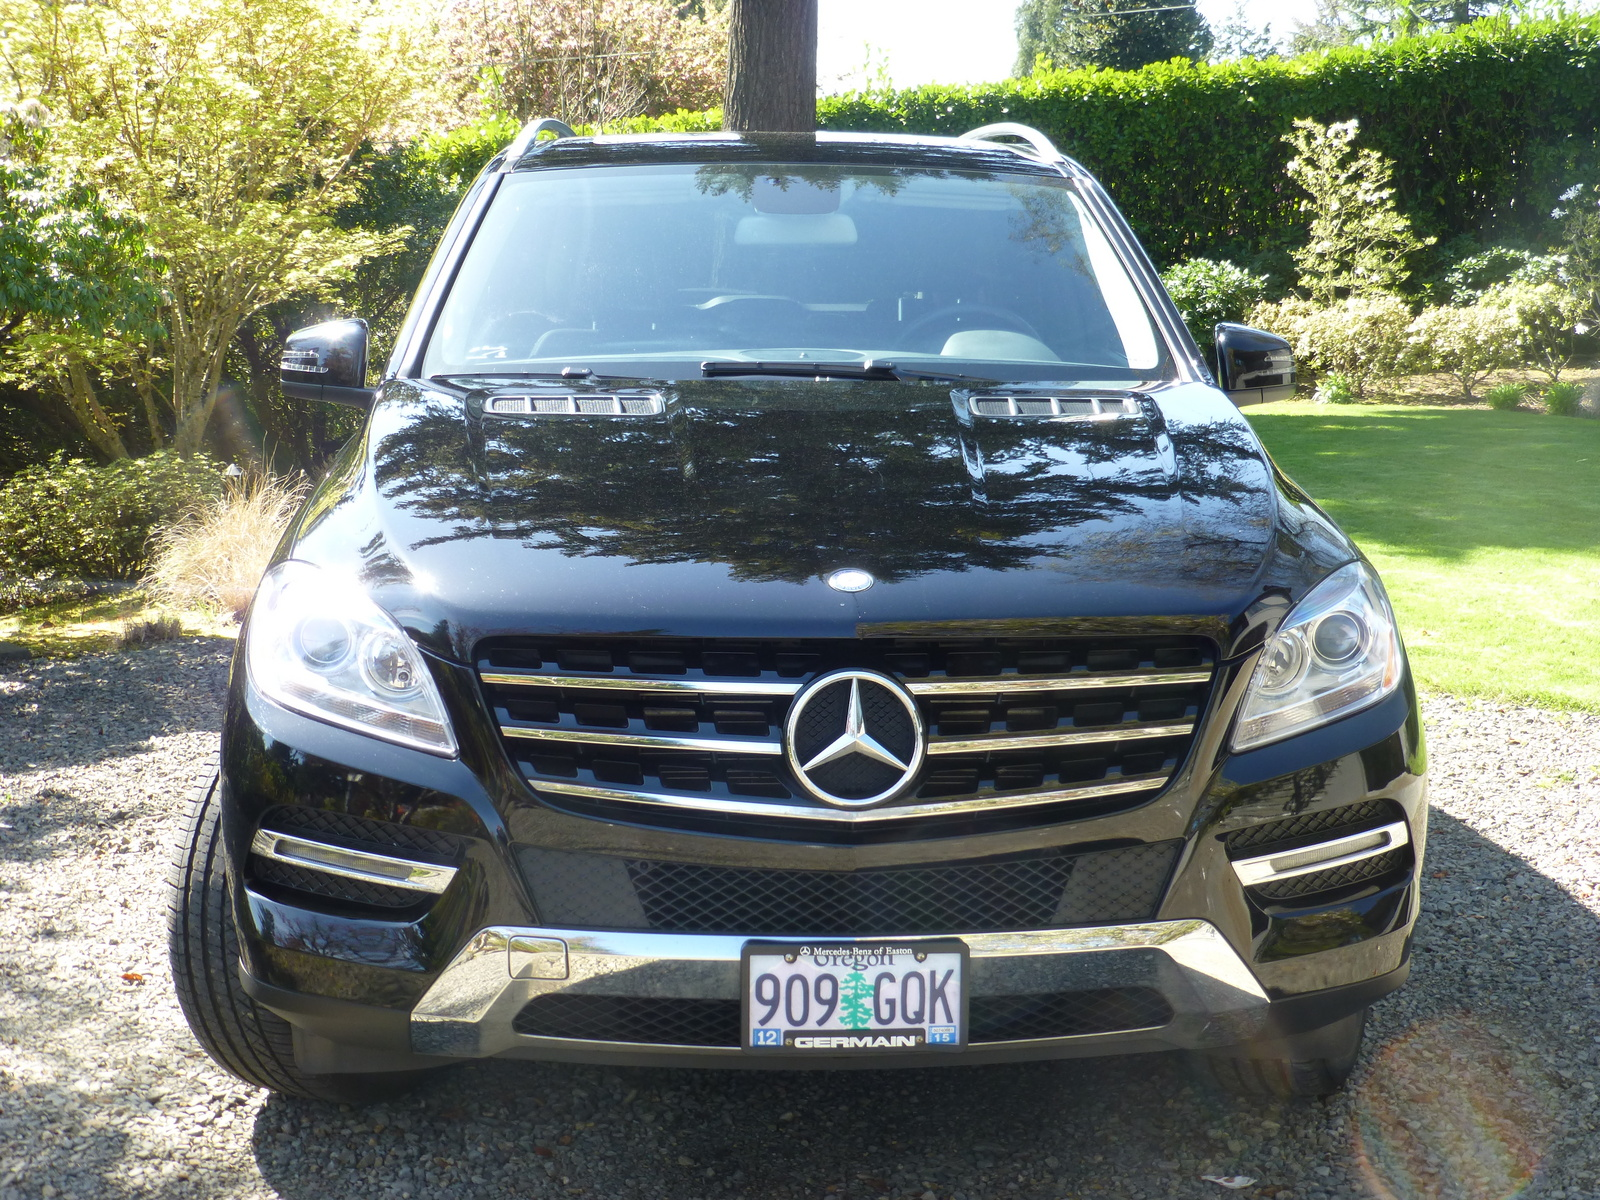 Picture of 2013 mercedes benz m class ml350 4matic exterior for Mercedes benz 2013 ml350 reviews